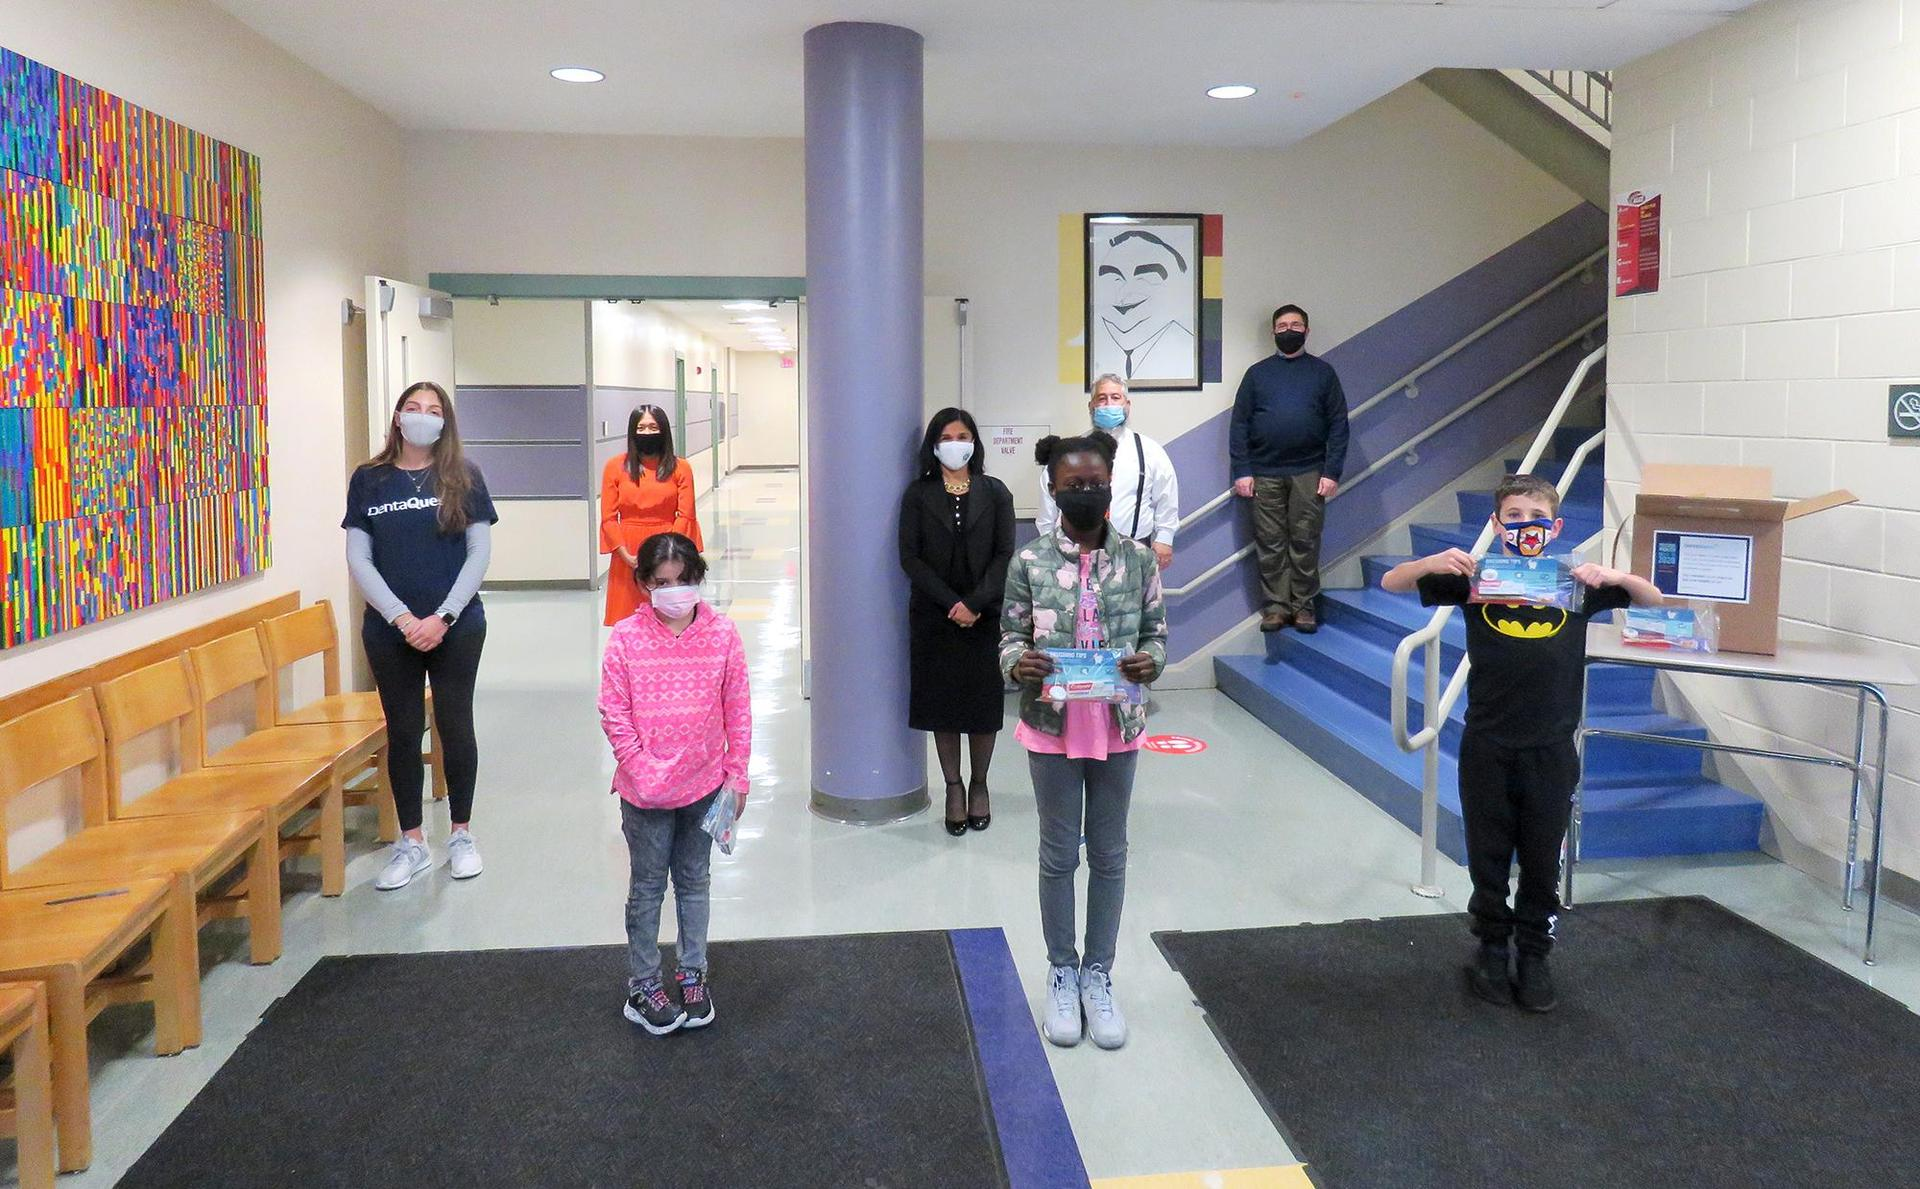 Students and adults, standing, socially distanced, in the Keverian School lobby